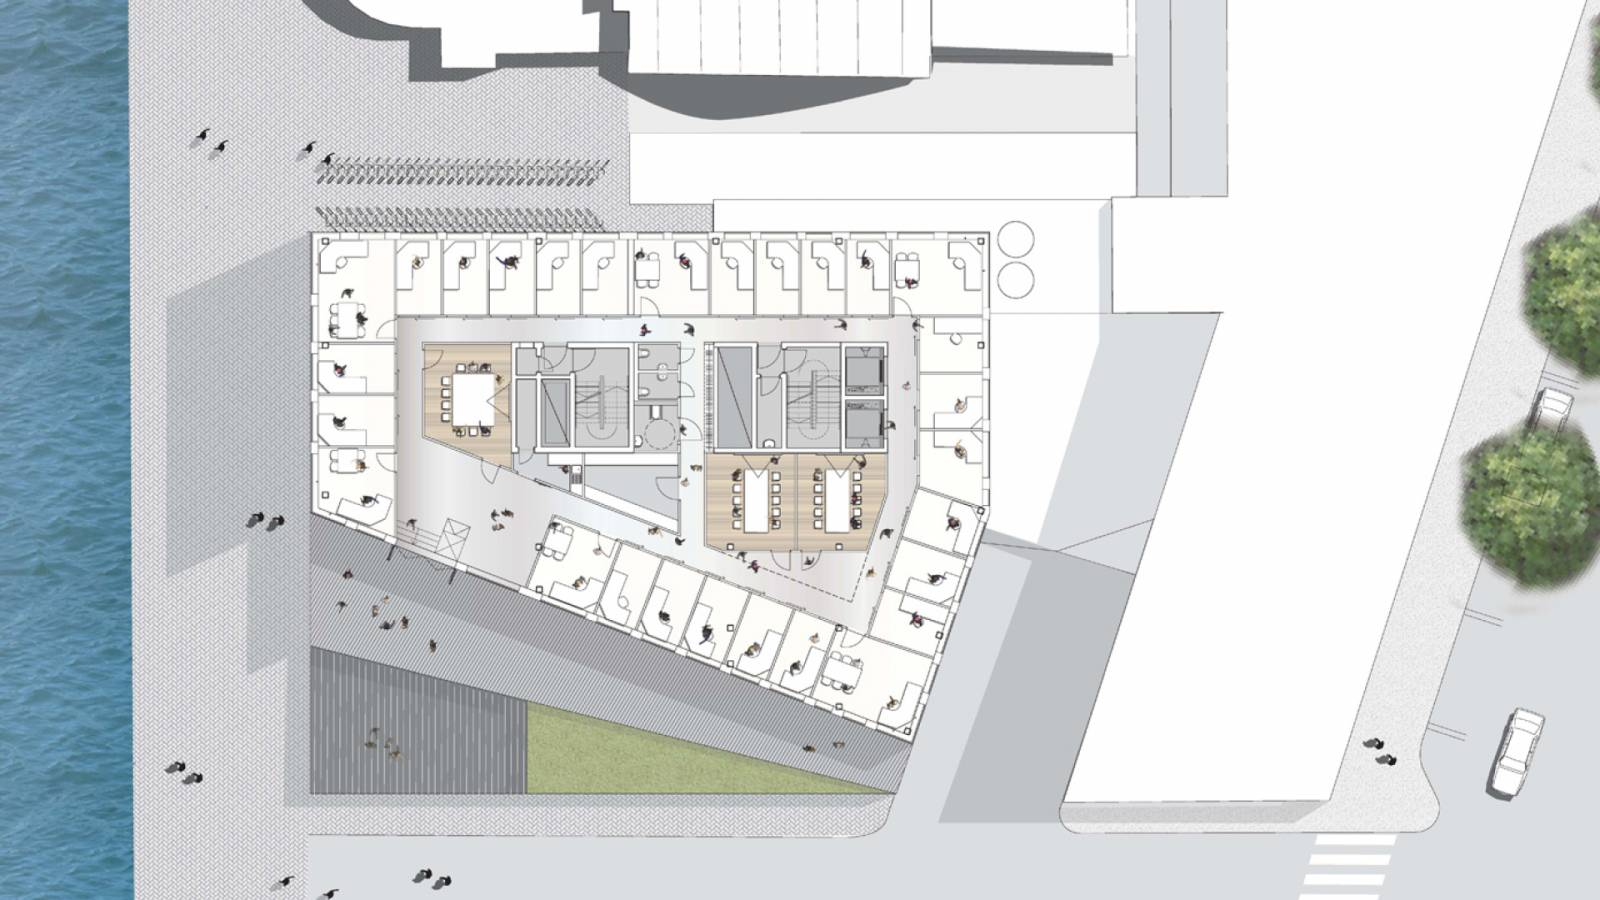 FLOOR PLAN OFFICE - Luftfartstilsynet - SPOL Architects